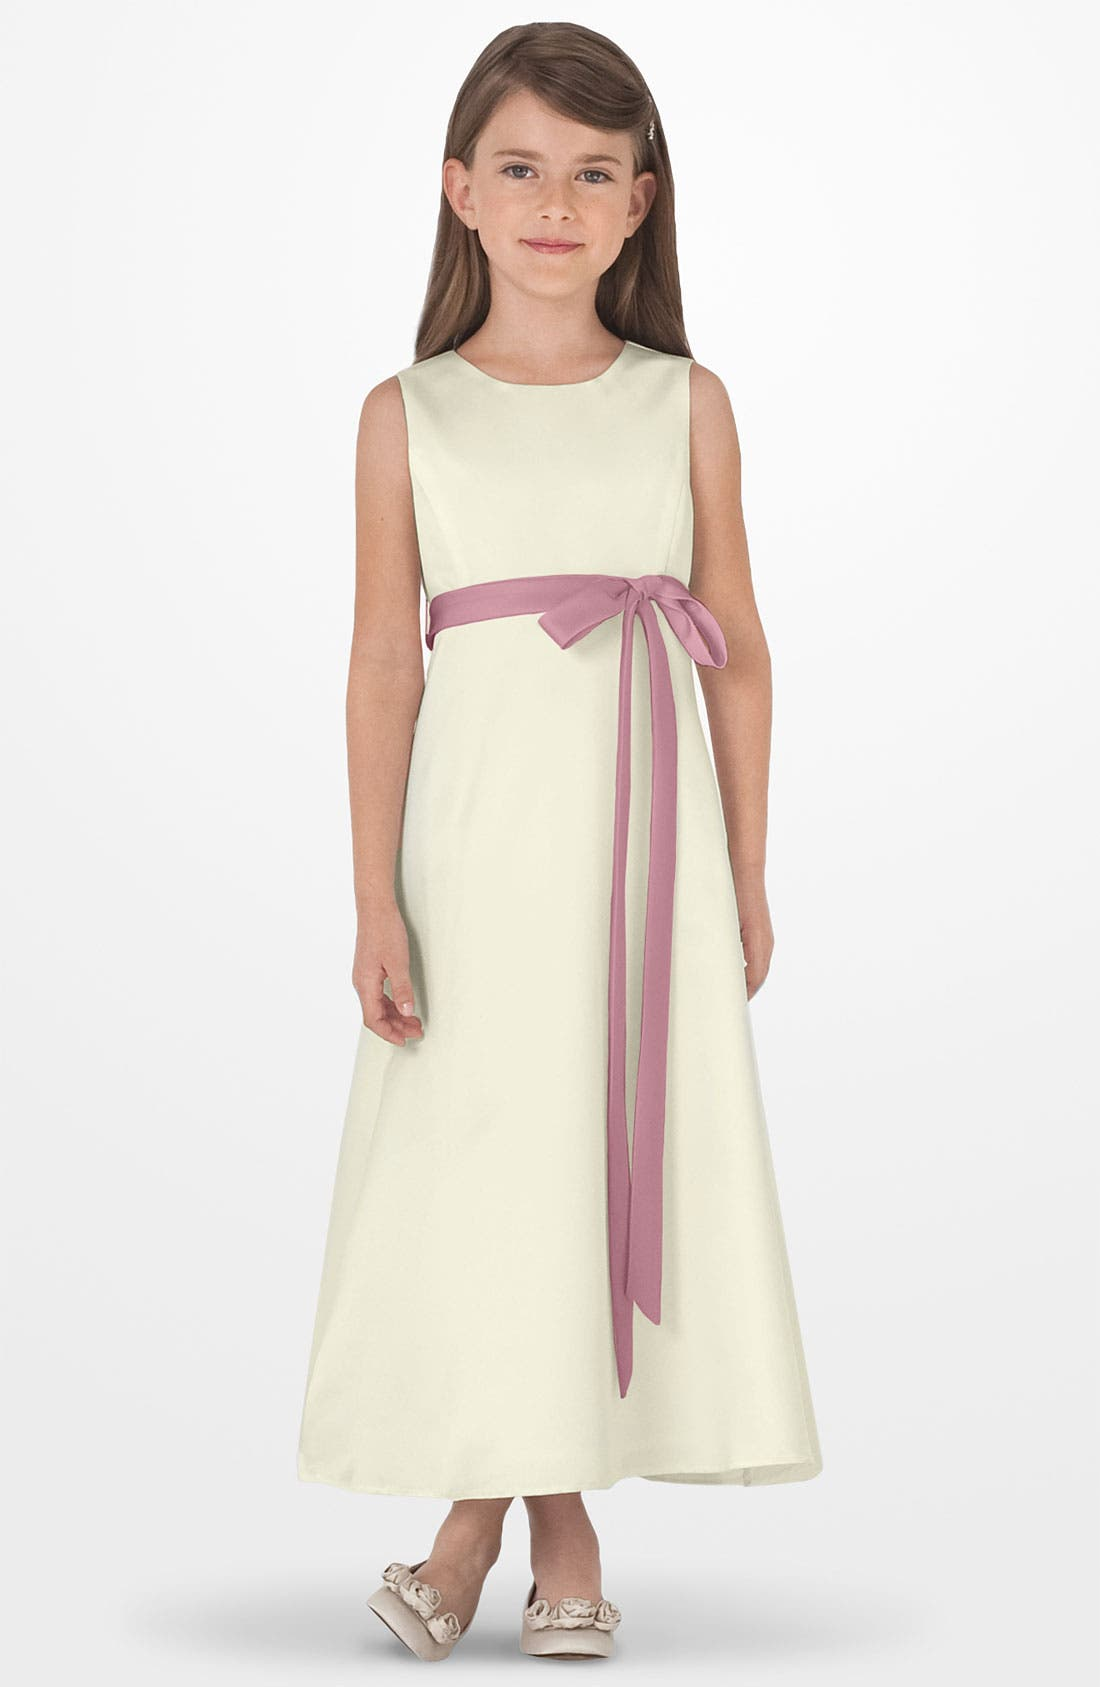 US ANGELS Sleeveless Satin Dress, Main, color, Ivory/ rose petal